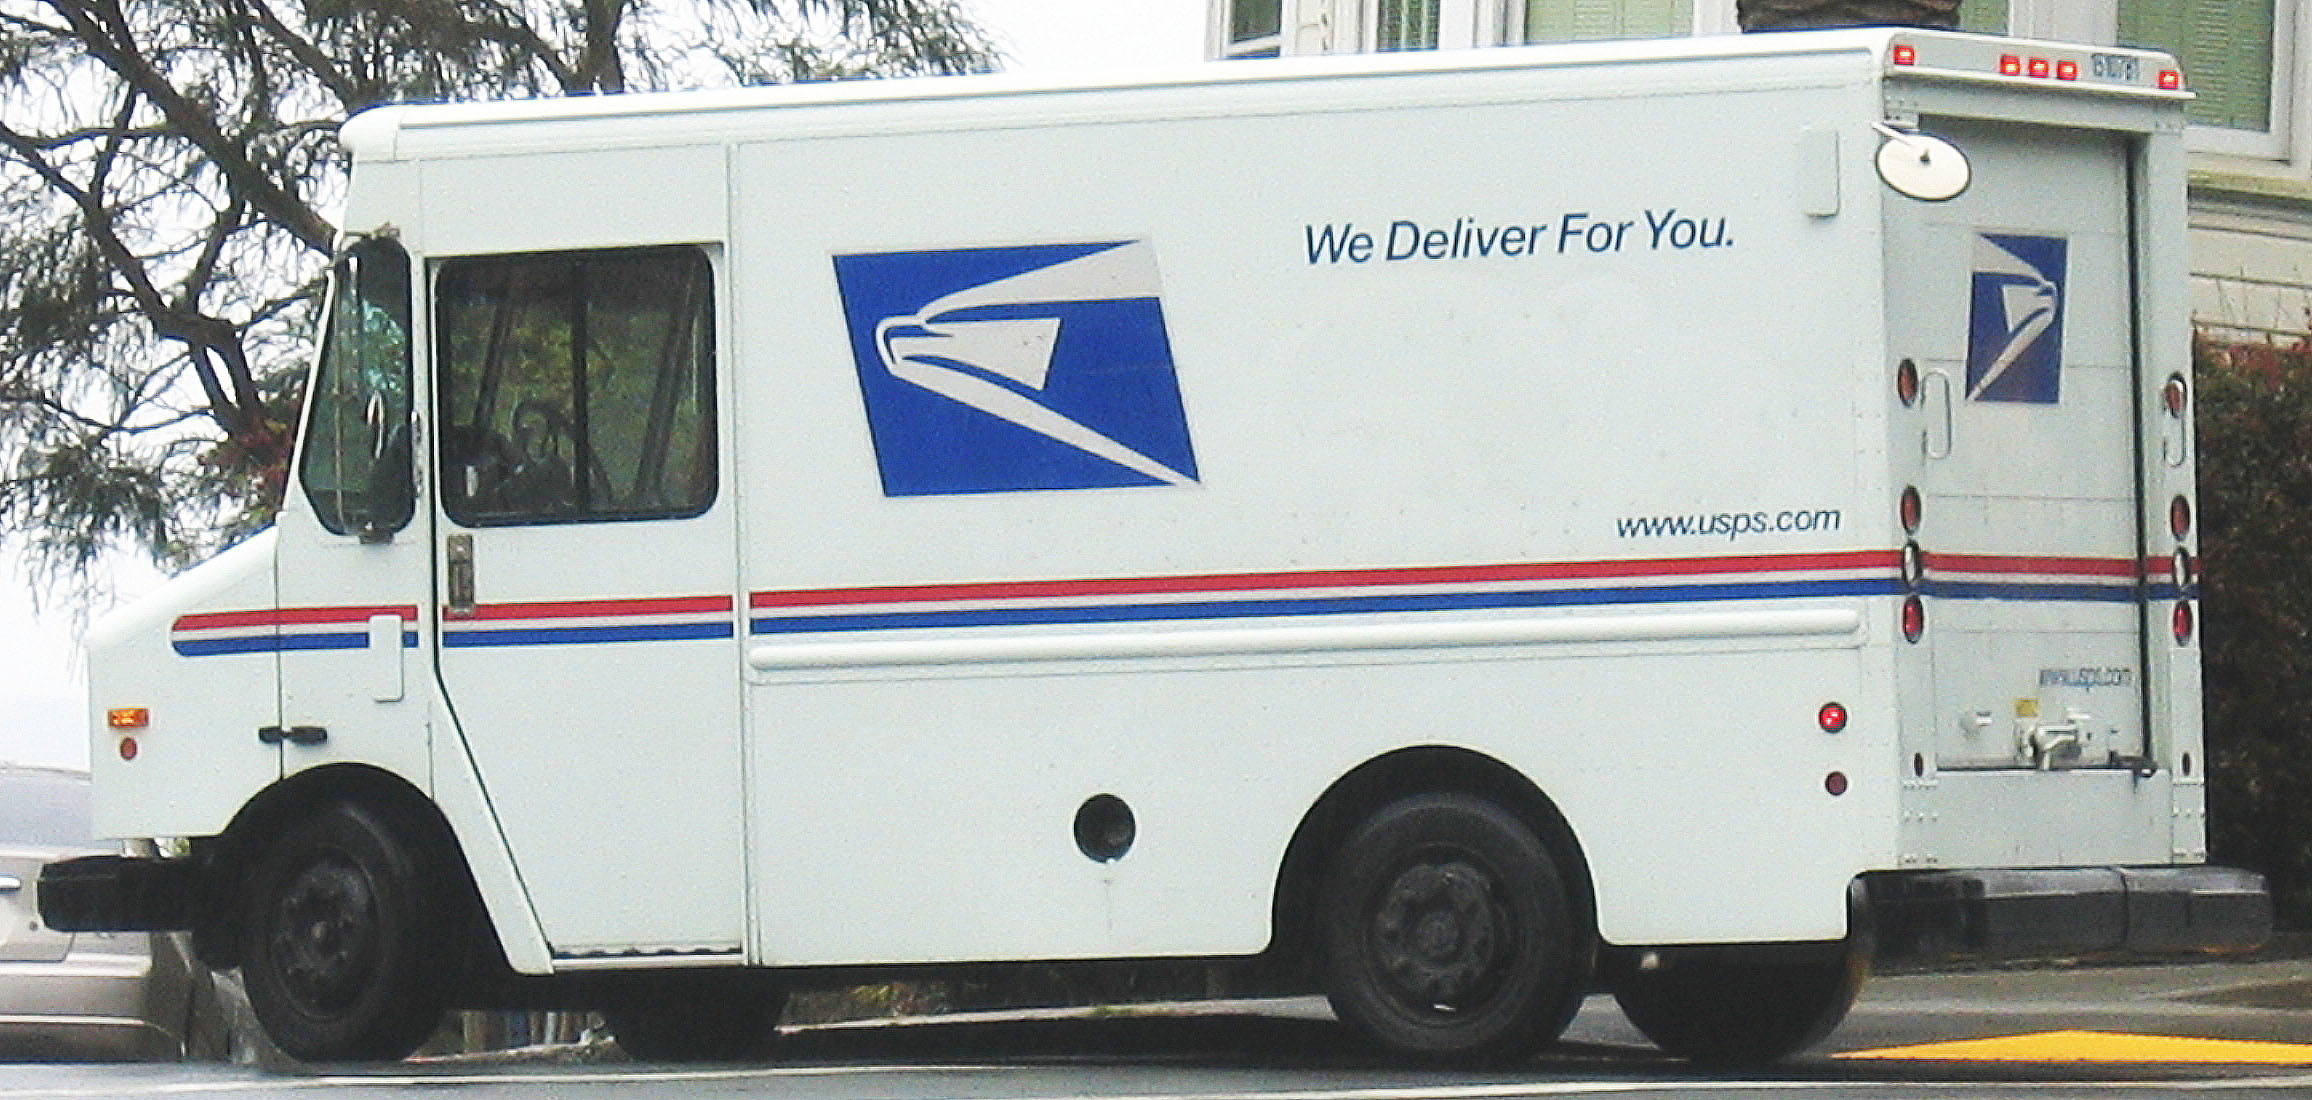 Alfa img - Showing > US Postal Office Mail Truck